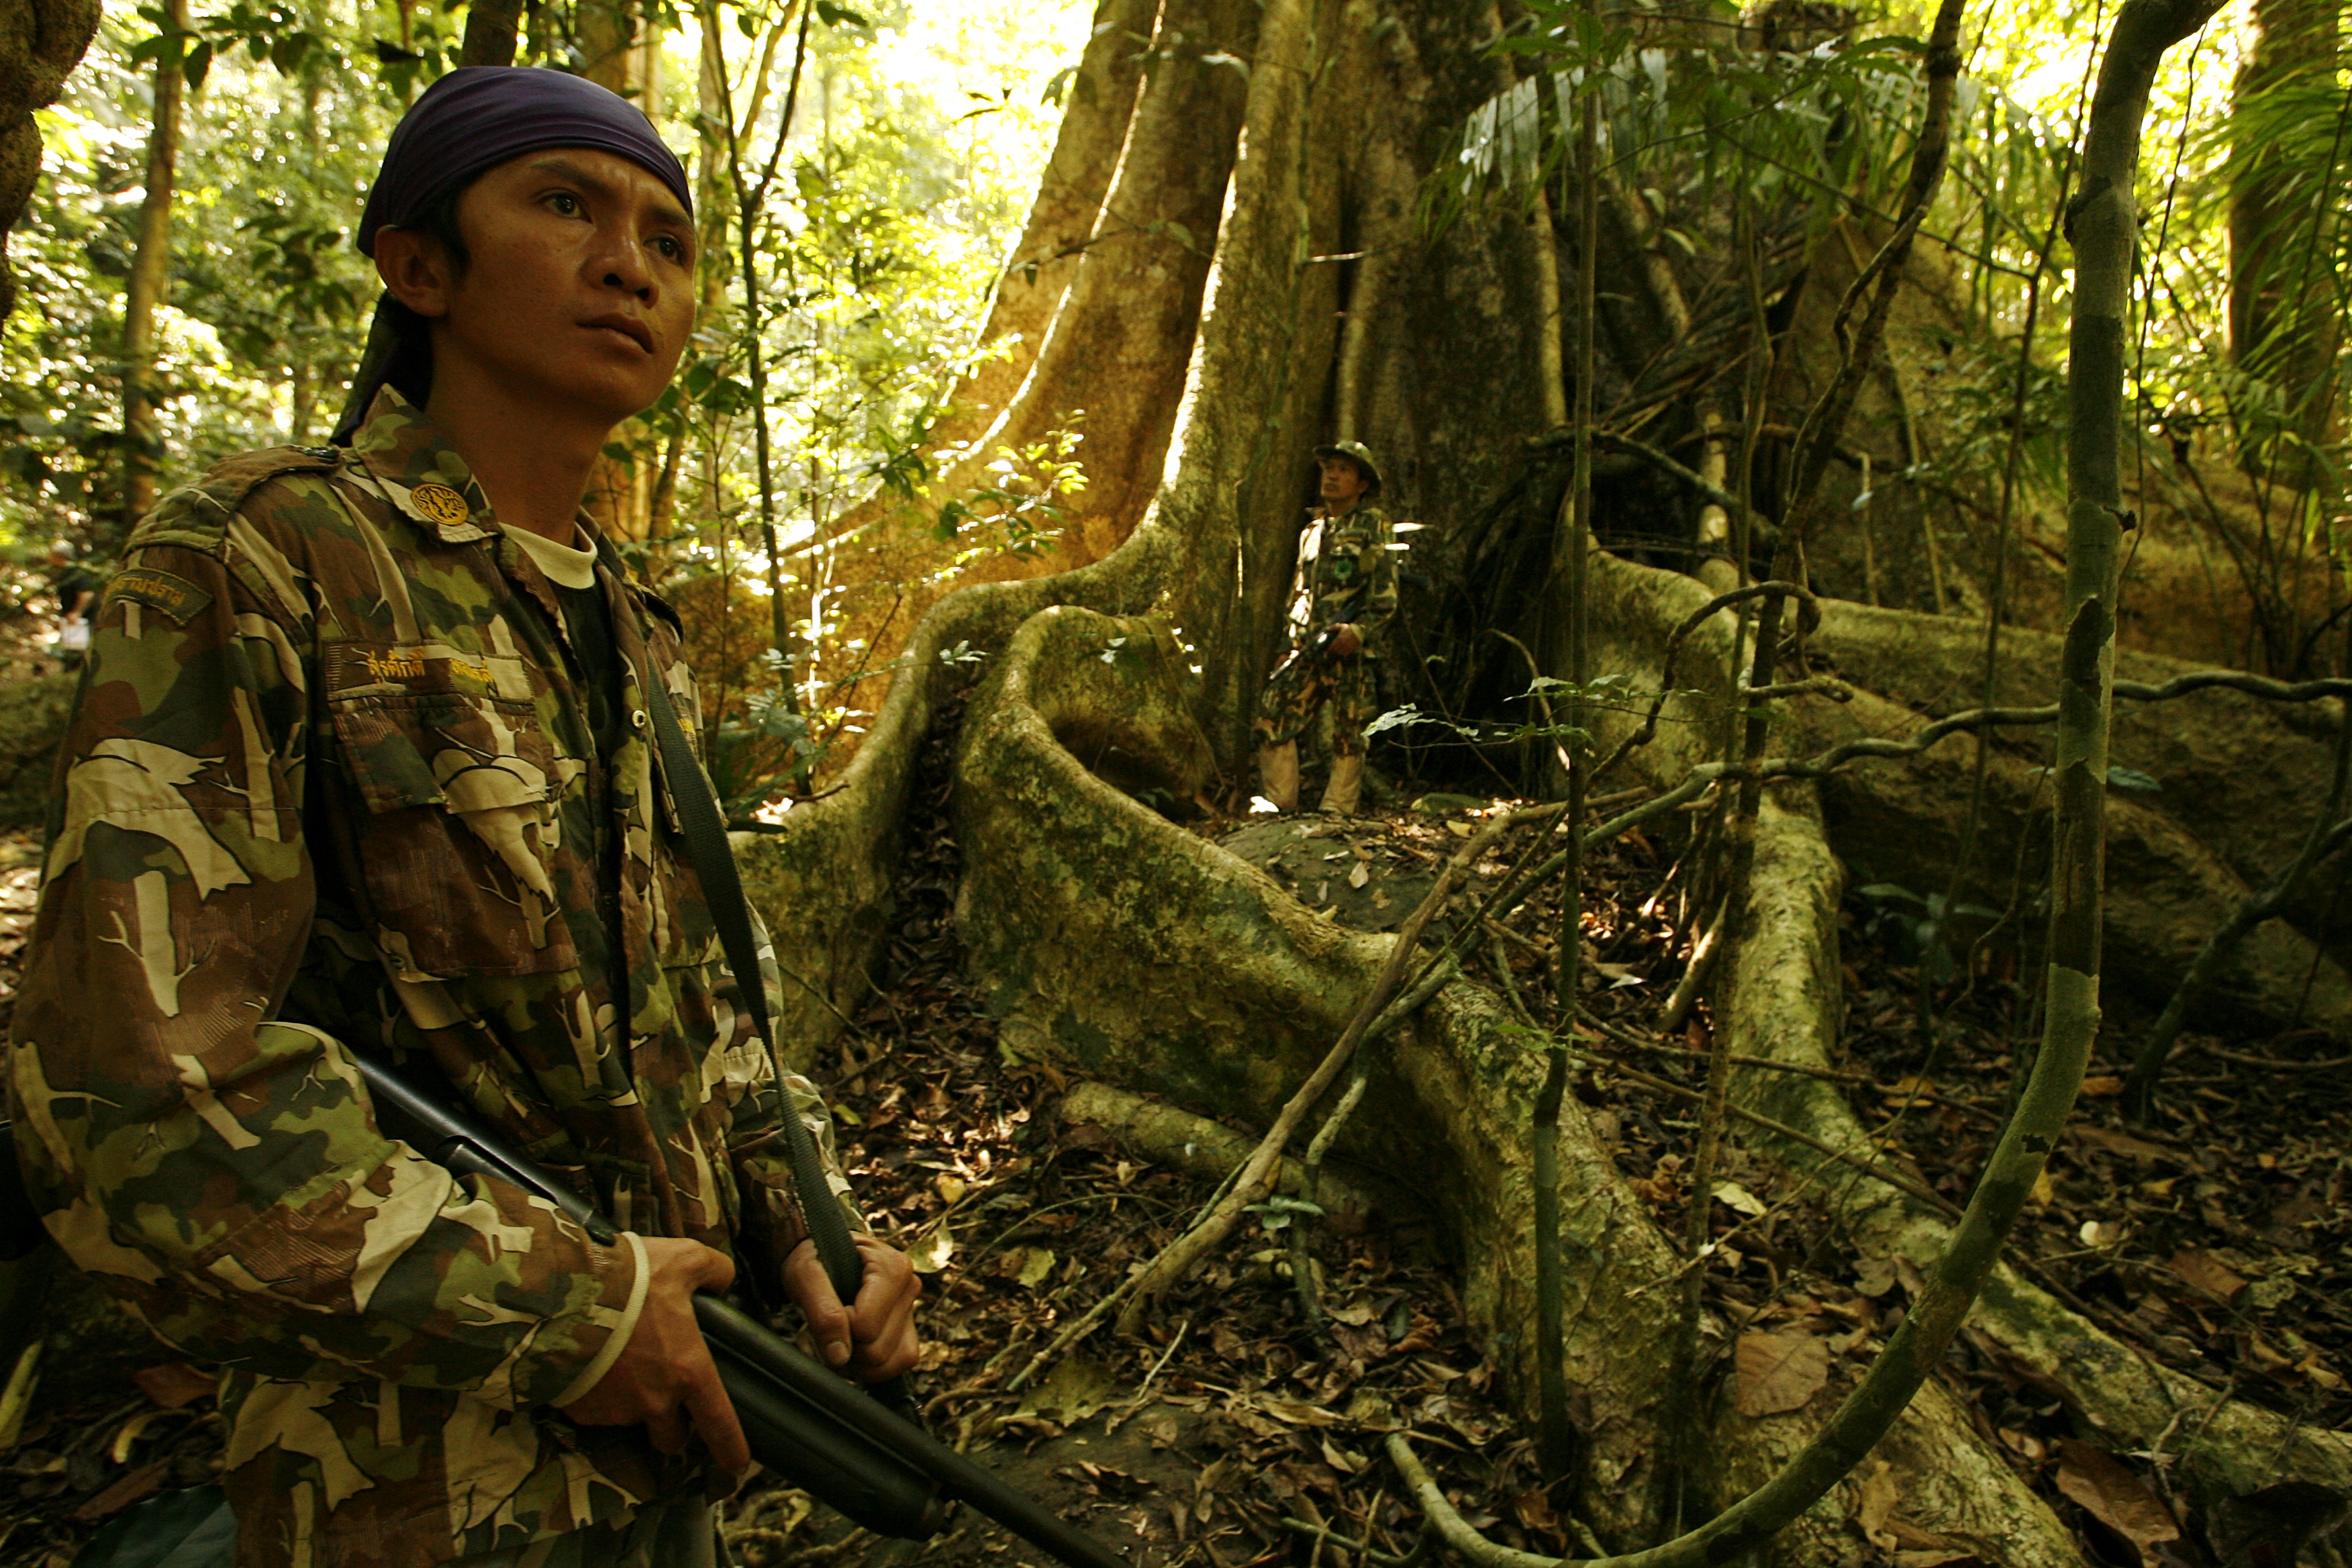 Thai rangers are seen in Khao Yai National Park in February 2008